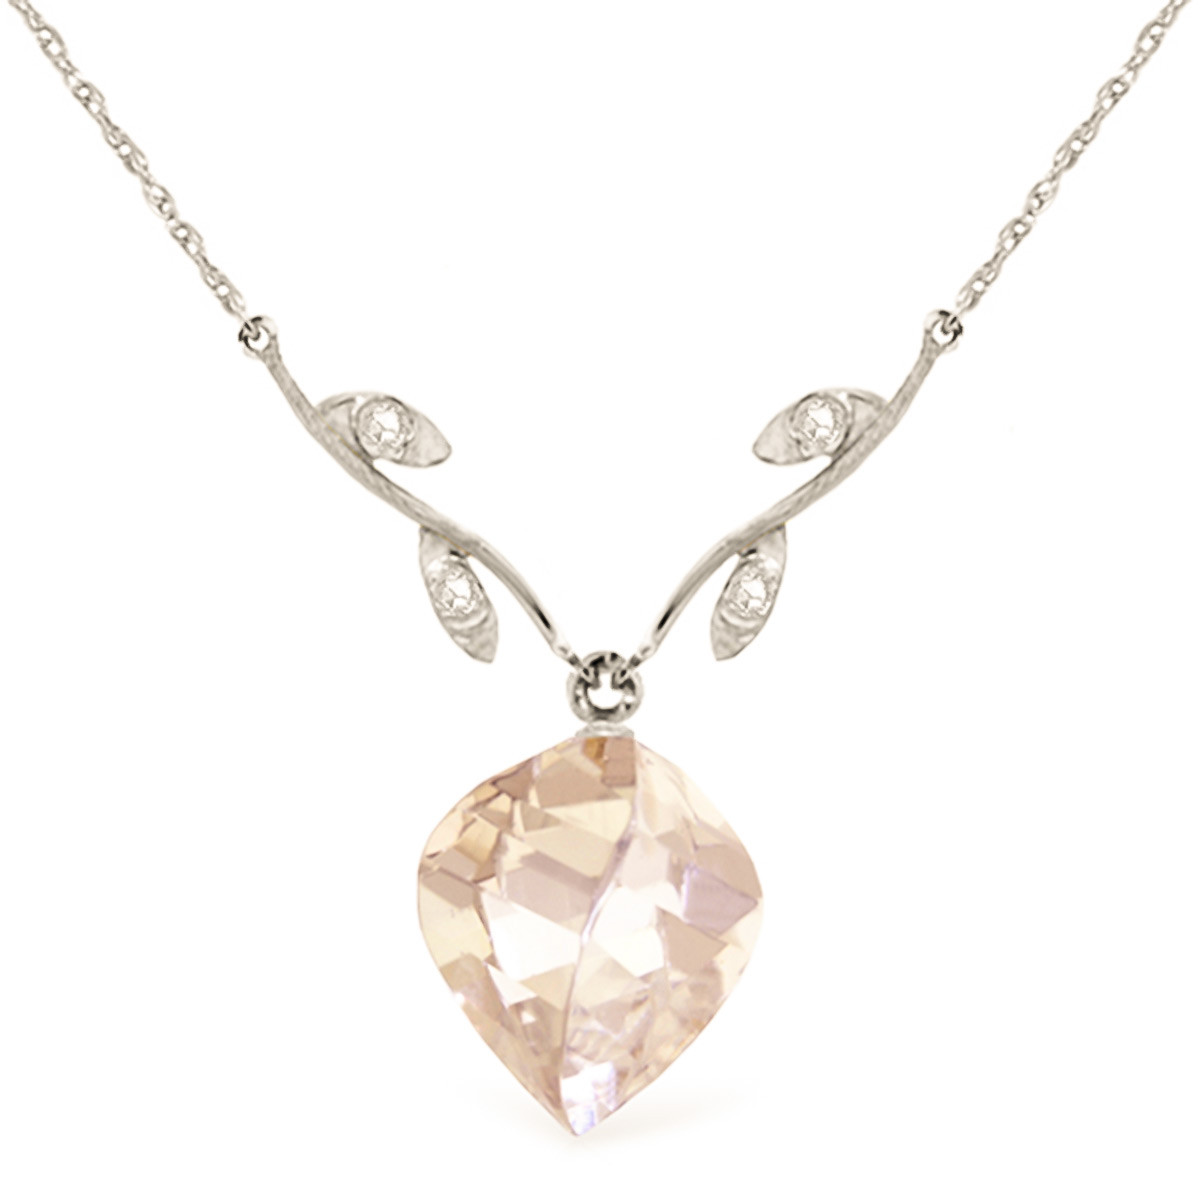 Twisted Briolette Cut White Topaz Pendant Necklace 12.82 ctw in 9ct White Gold